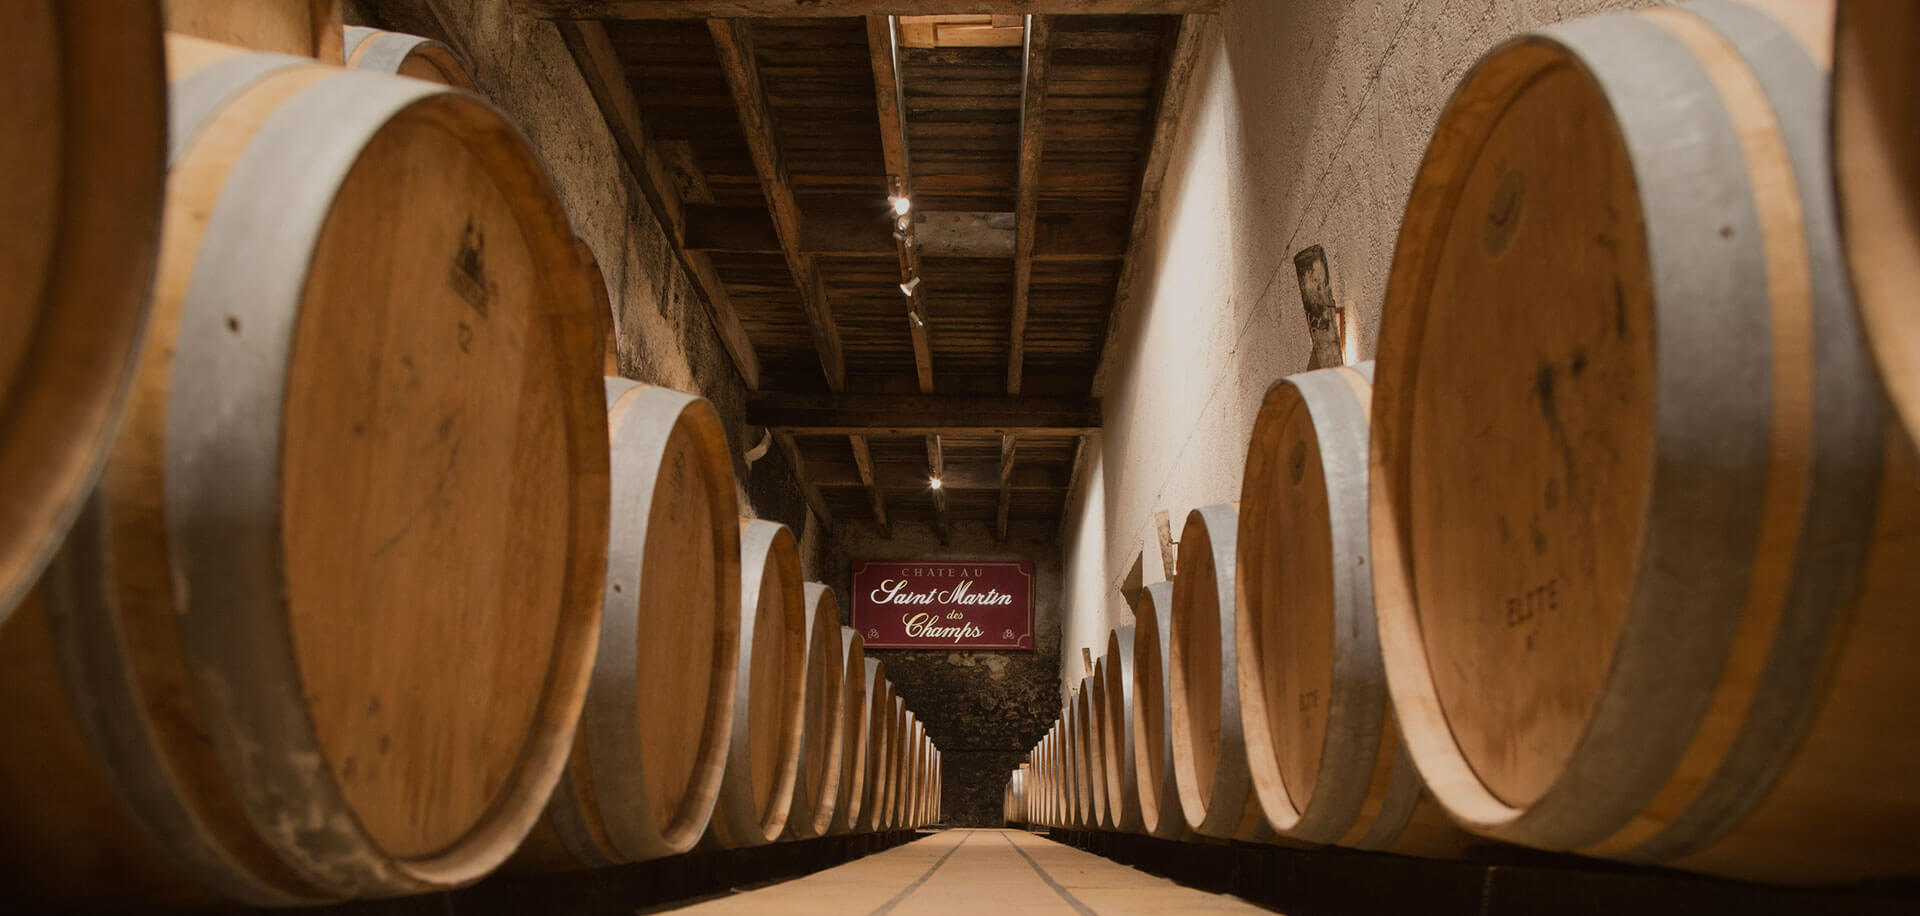 AOP Saint Chinian vinification cellar